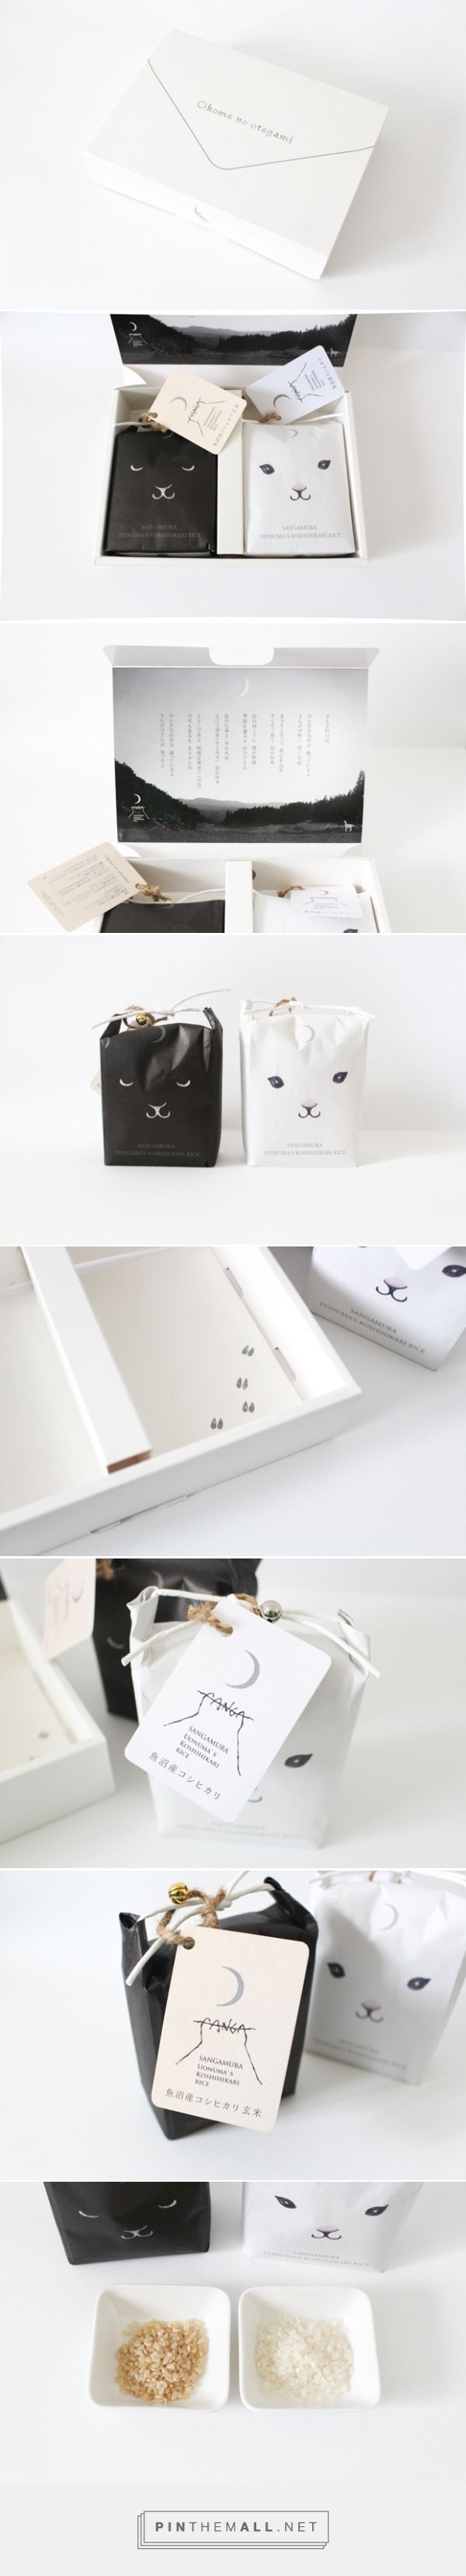 White apron restaurant warrington